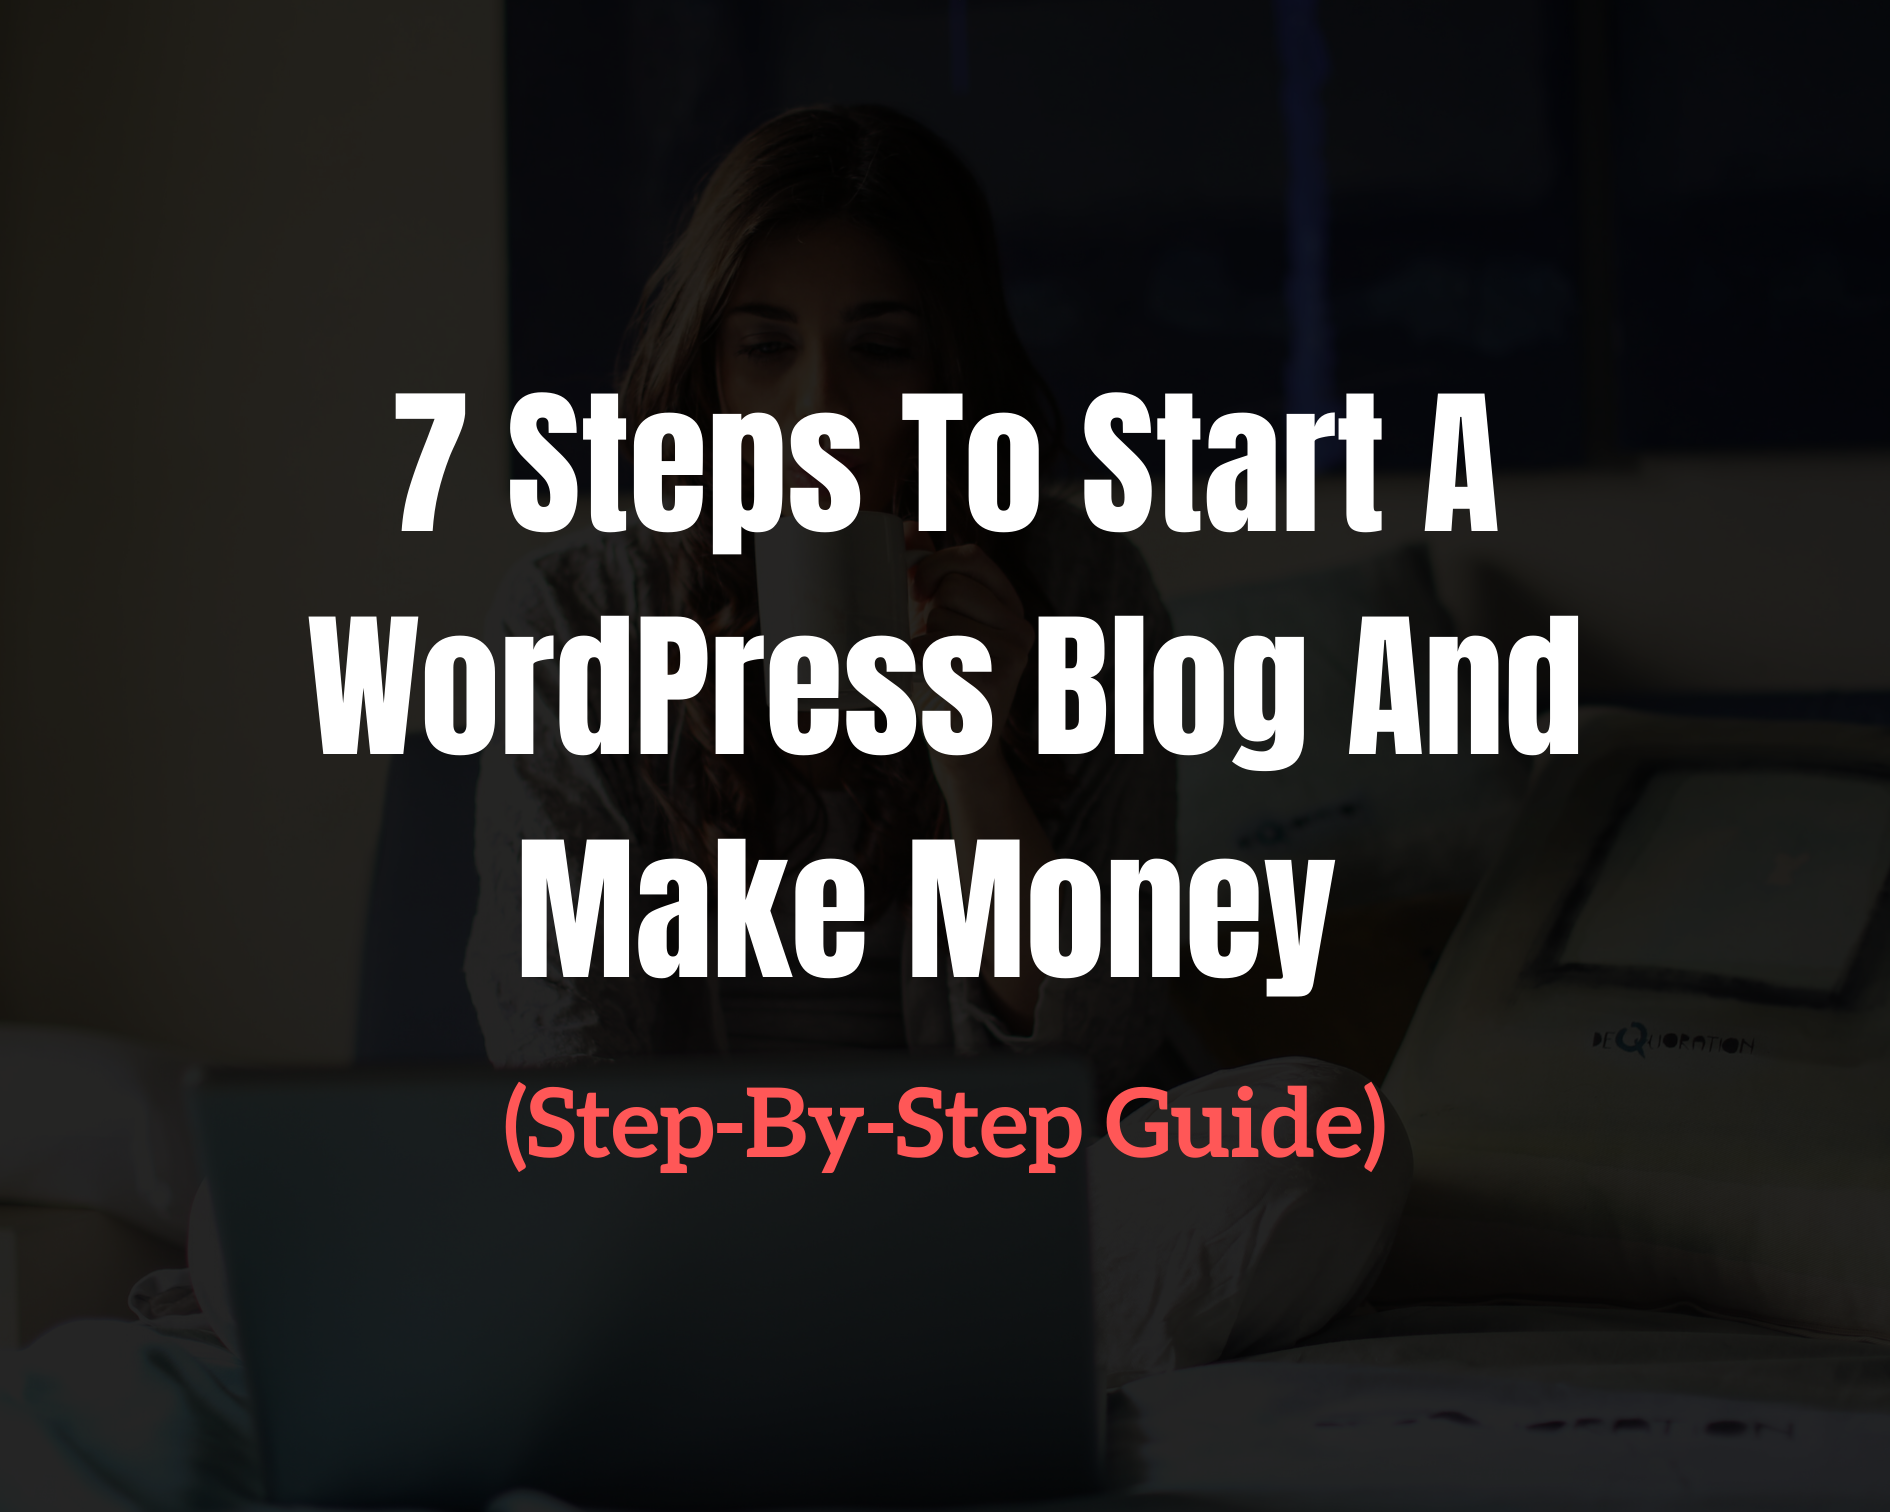 7 Steps To Start A WordPress Blog And Make Money ( Complete Guide)